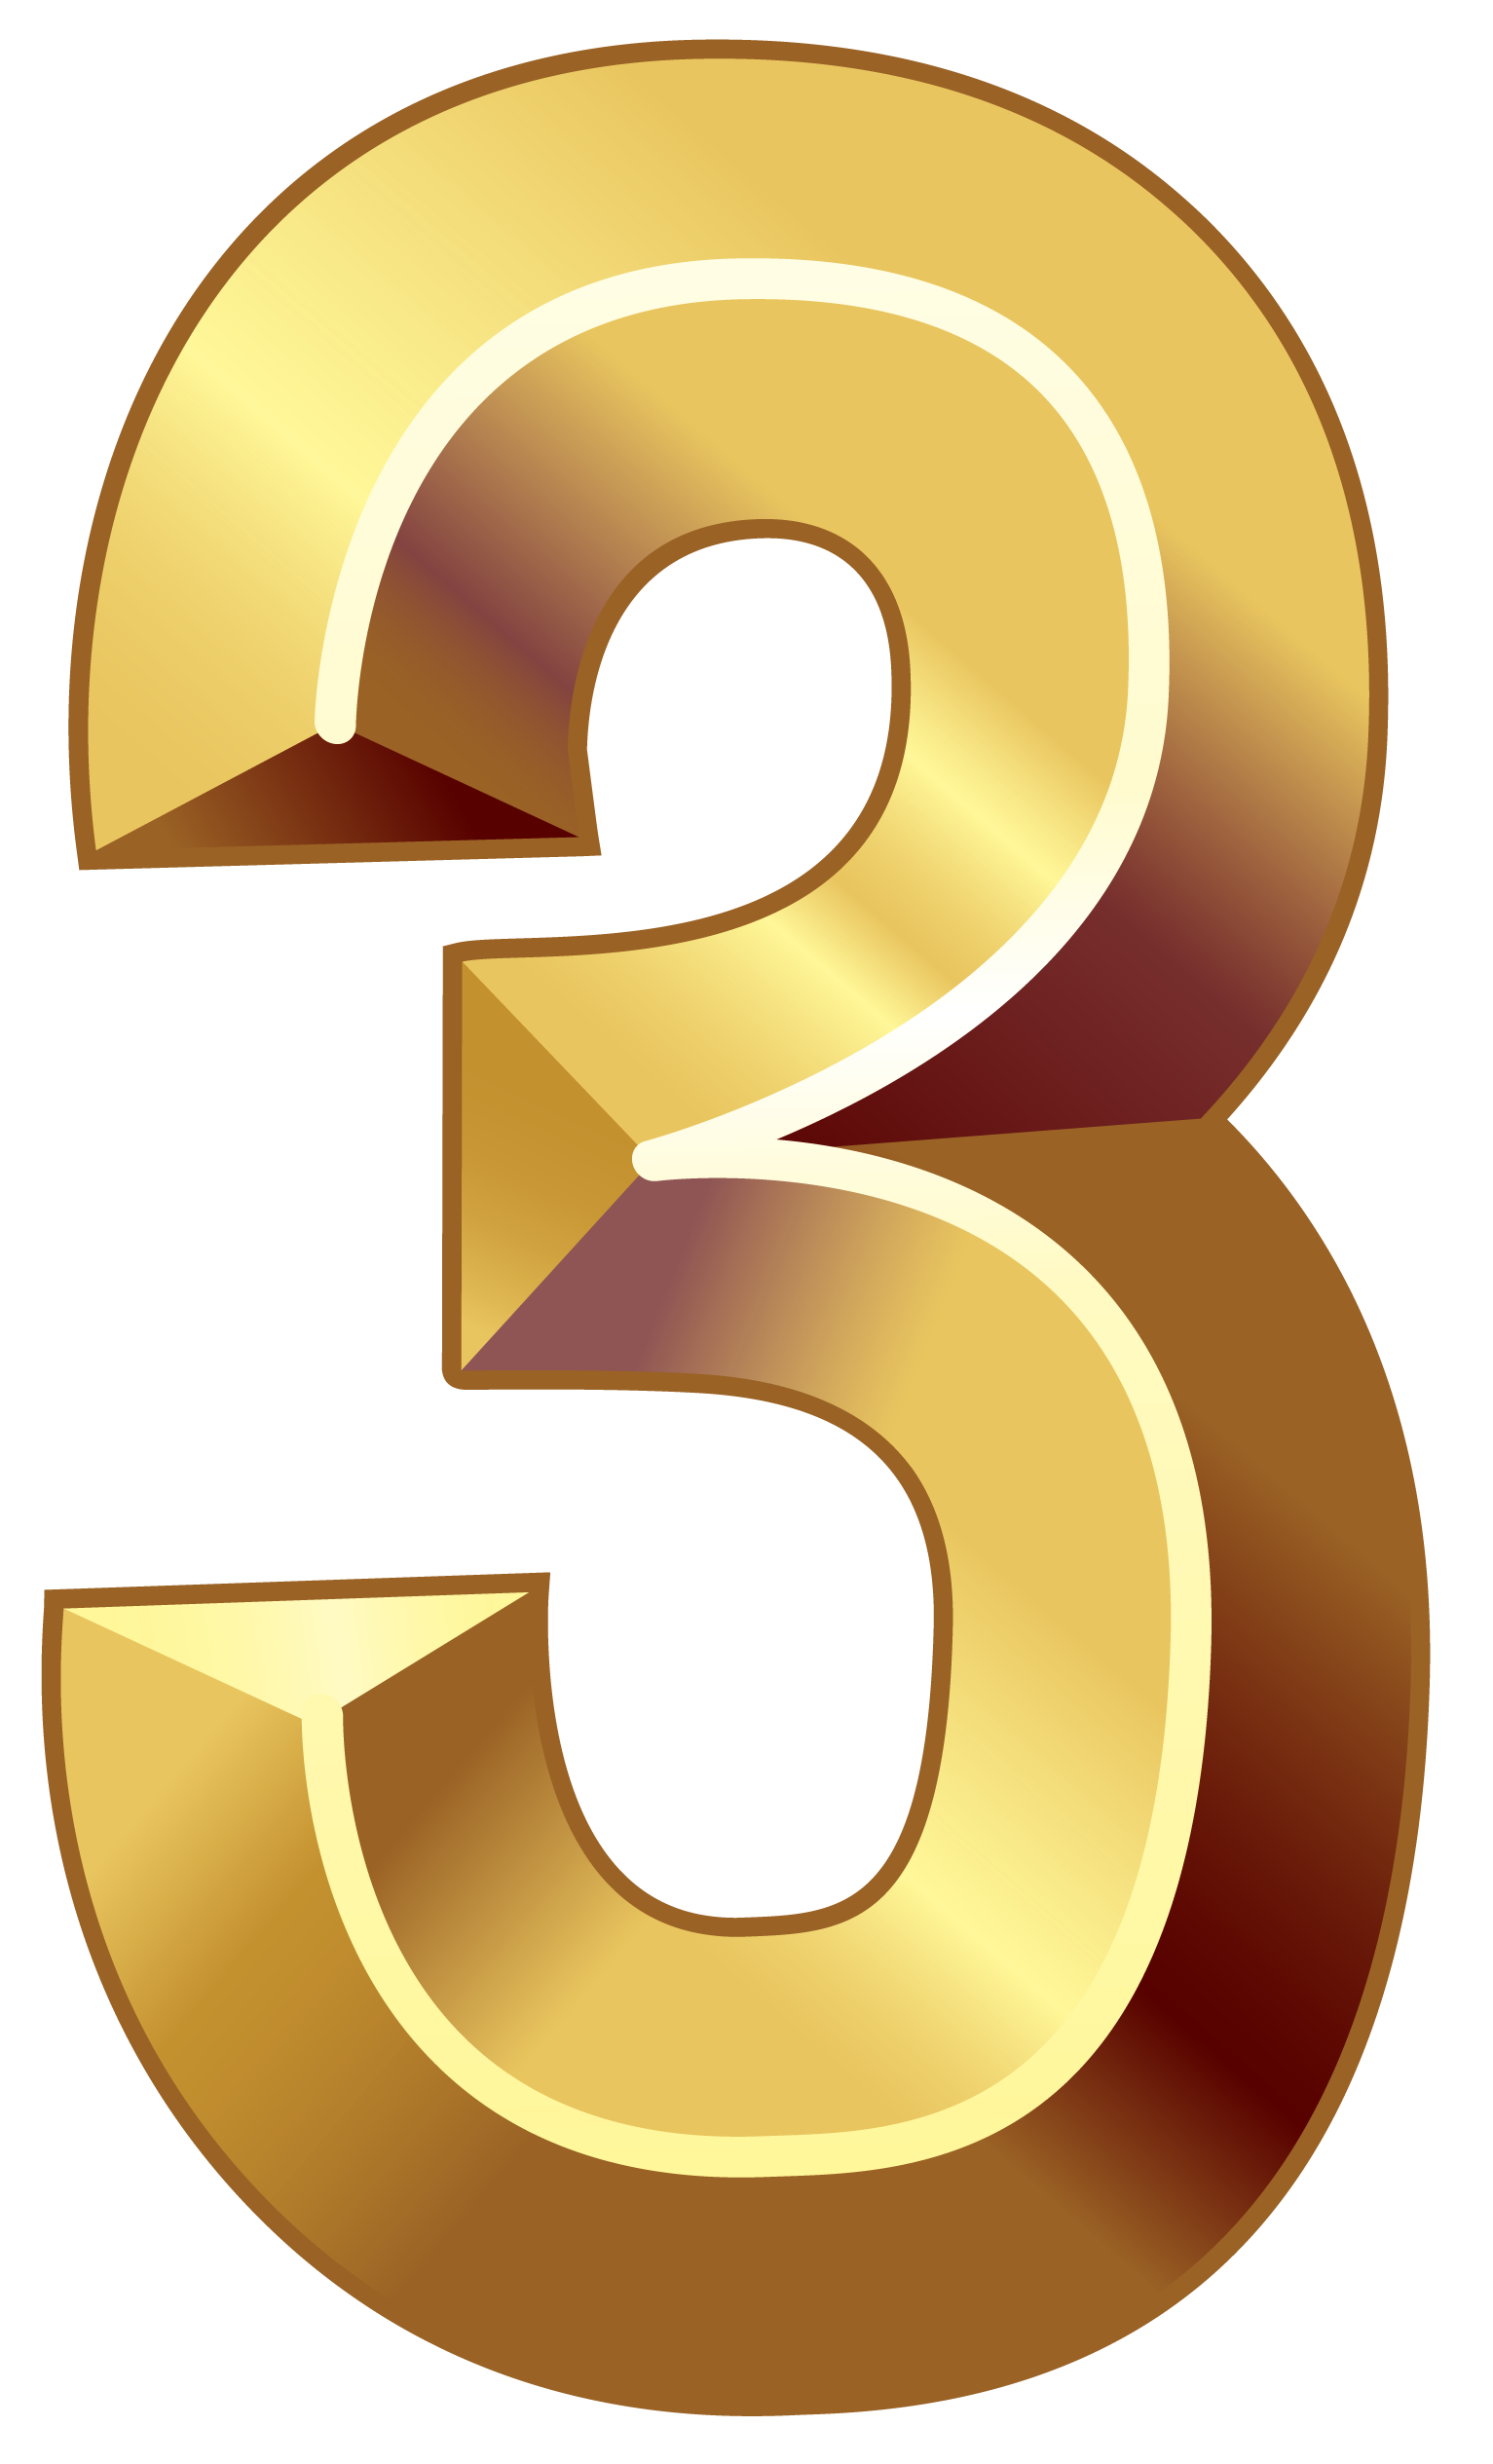 Number Three Png & Free Number Three.png Transparent Images #24921.